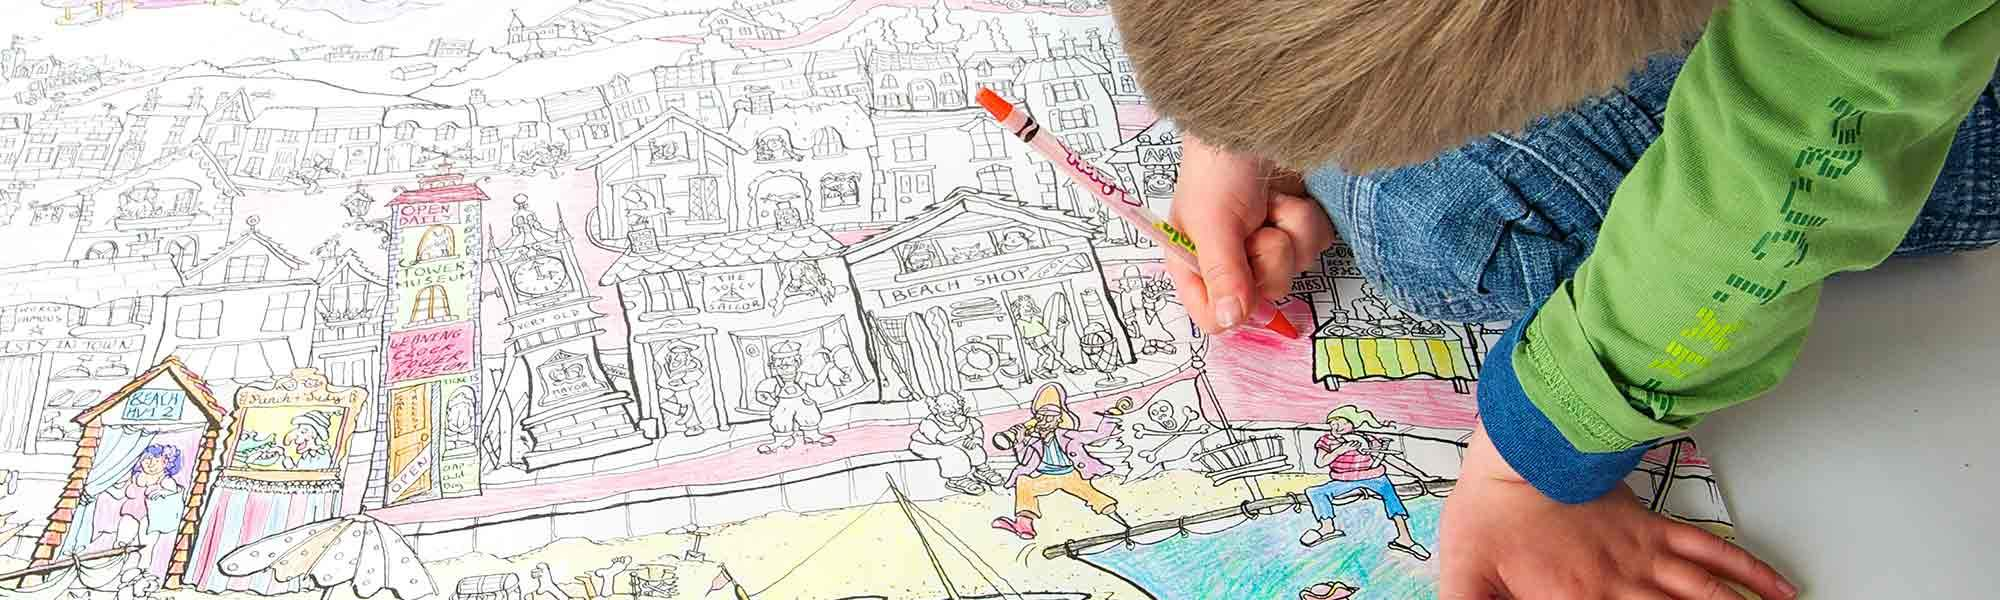 Little Bird 50% off 3 Giant Colouring Posters - Ideal Rainy Day Activity Keep The Kids Busy this Half Term